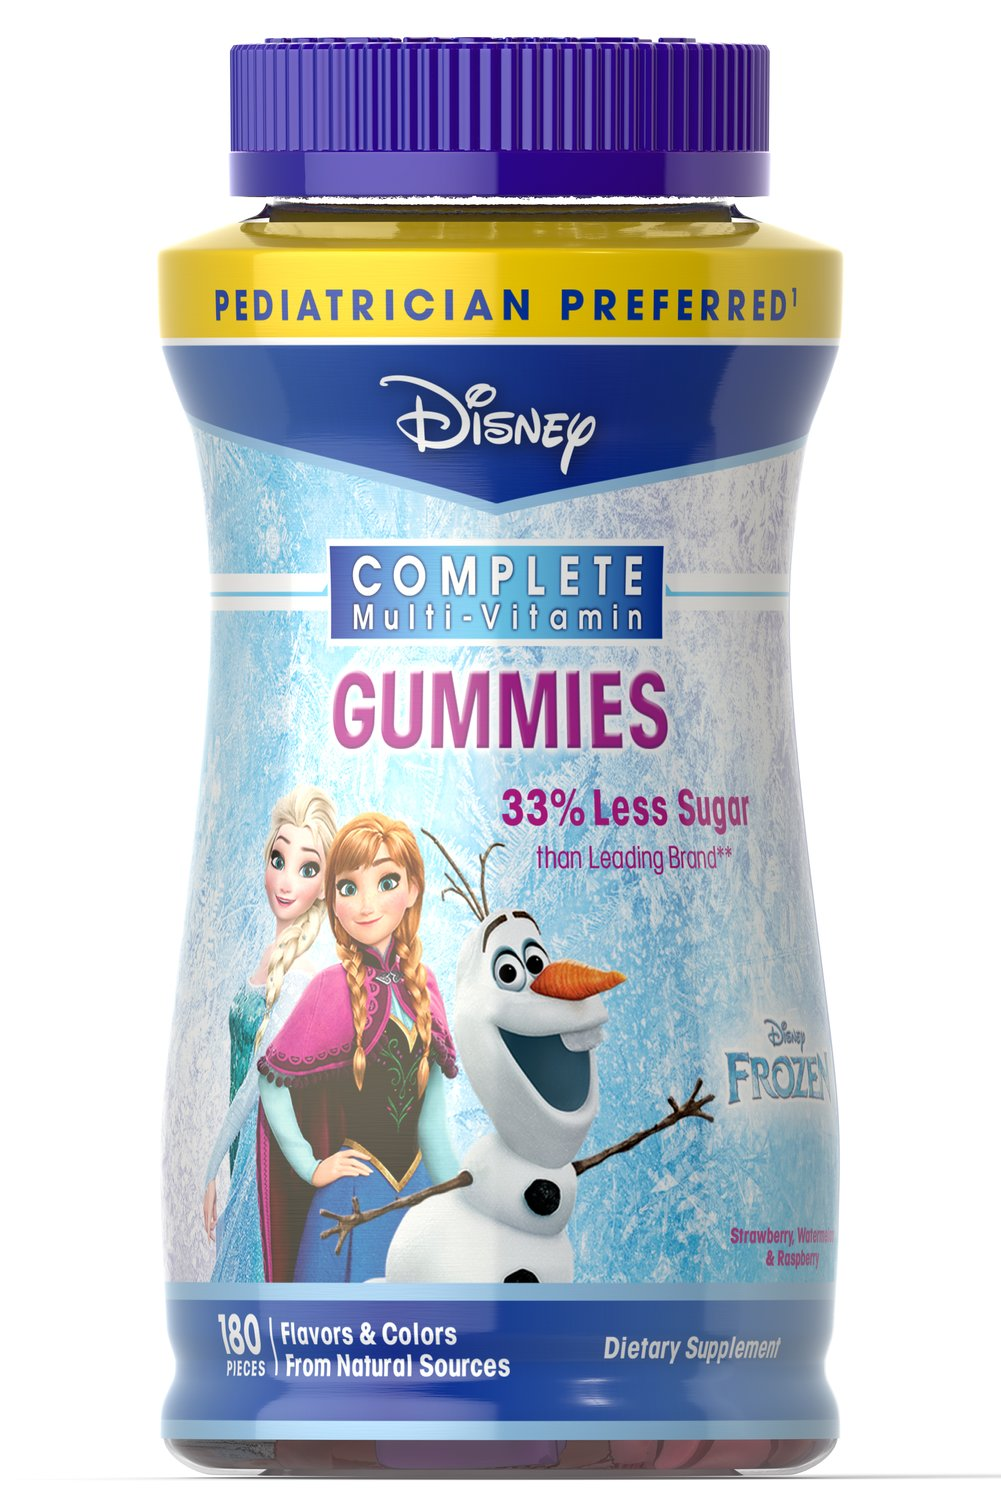 Disney Frozen Complete Multi-Vitamin Gummies <p><strong>From Manufacturer's Label:</strong><br /><br />Disney Frozen  Multivitamin Gummies contain over 10 Vitamins and Minerals, including  Vitamin A for eye health, B Vitamins for energy metabolism, and Vitamins  C & D to support immune function.**  <br /><br />Available in fun shapes and 3 fantastic flavors strawberry, watermelon and raspberry.  For healthy growth and developmen